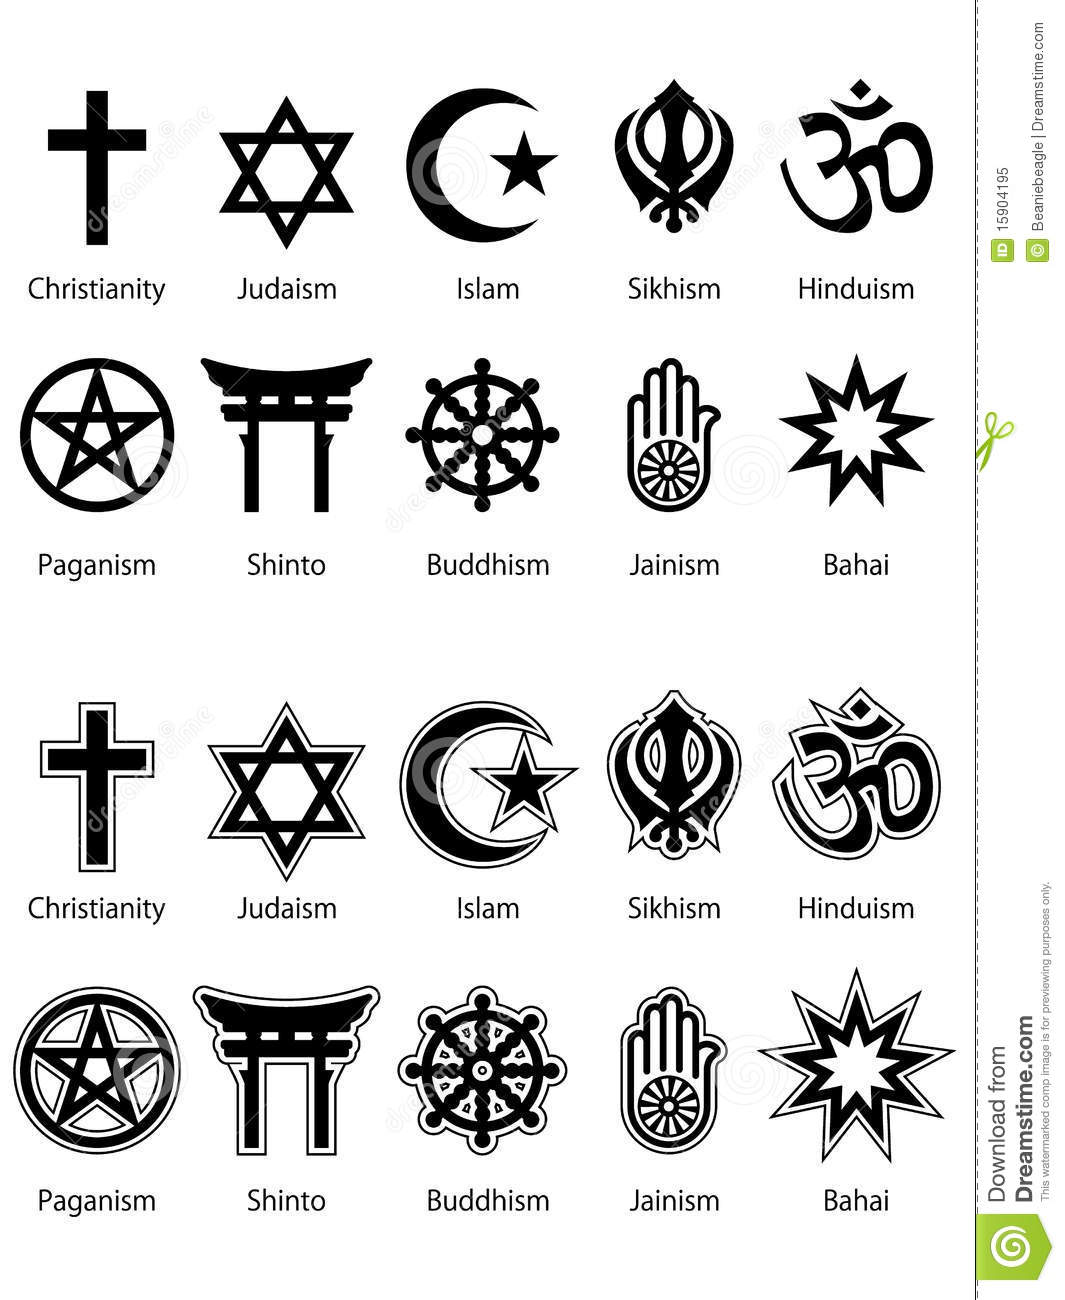 relegious symbols Test your knowledge with amazing and interesting facts, trivia, quizzes, and brain teaser games on mentalflosscom.